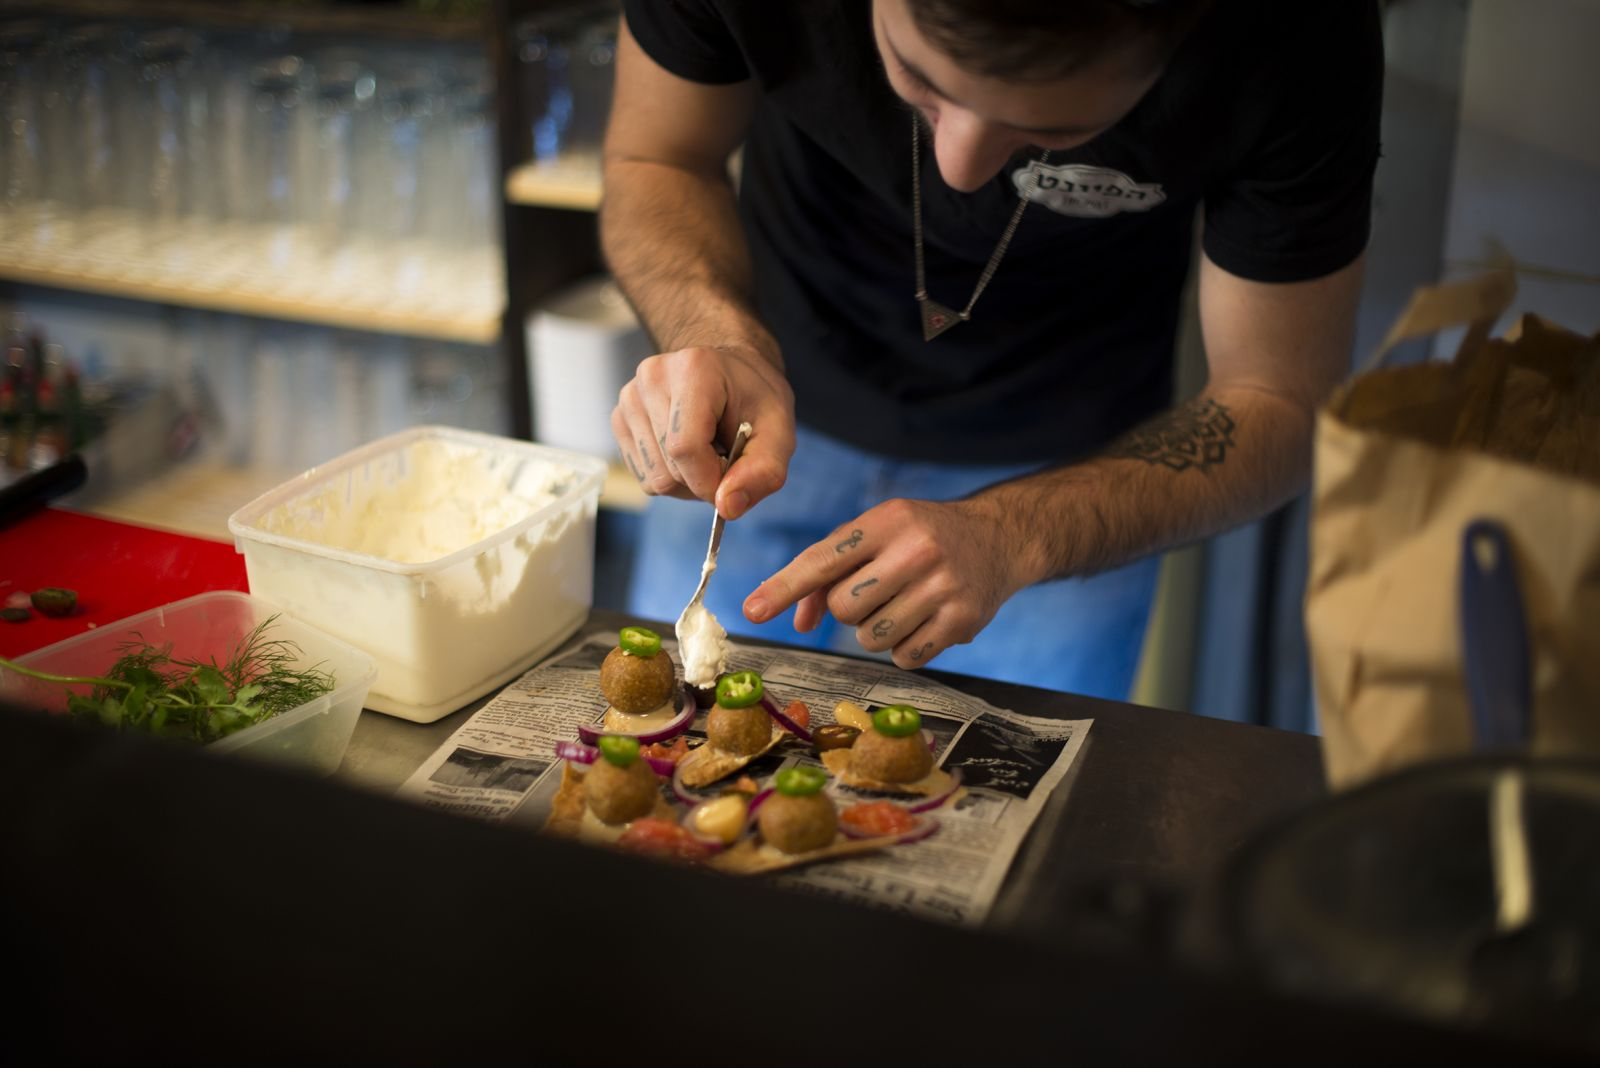 A time-consuming delicacy being prepared in the kitchen of Haifa's Pint Pub. Photo: courtesy